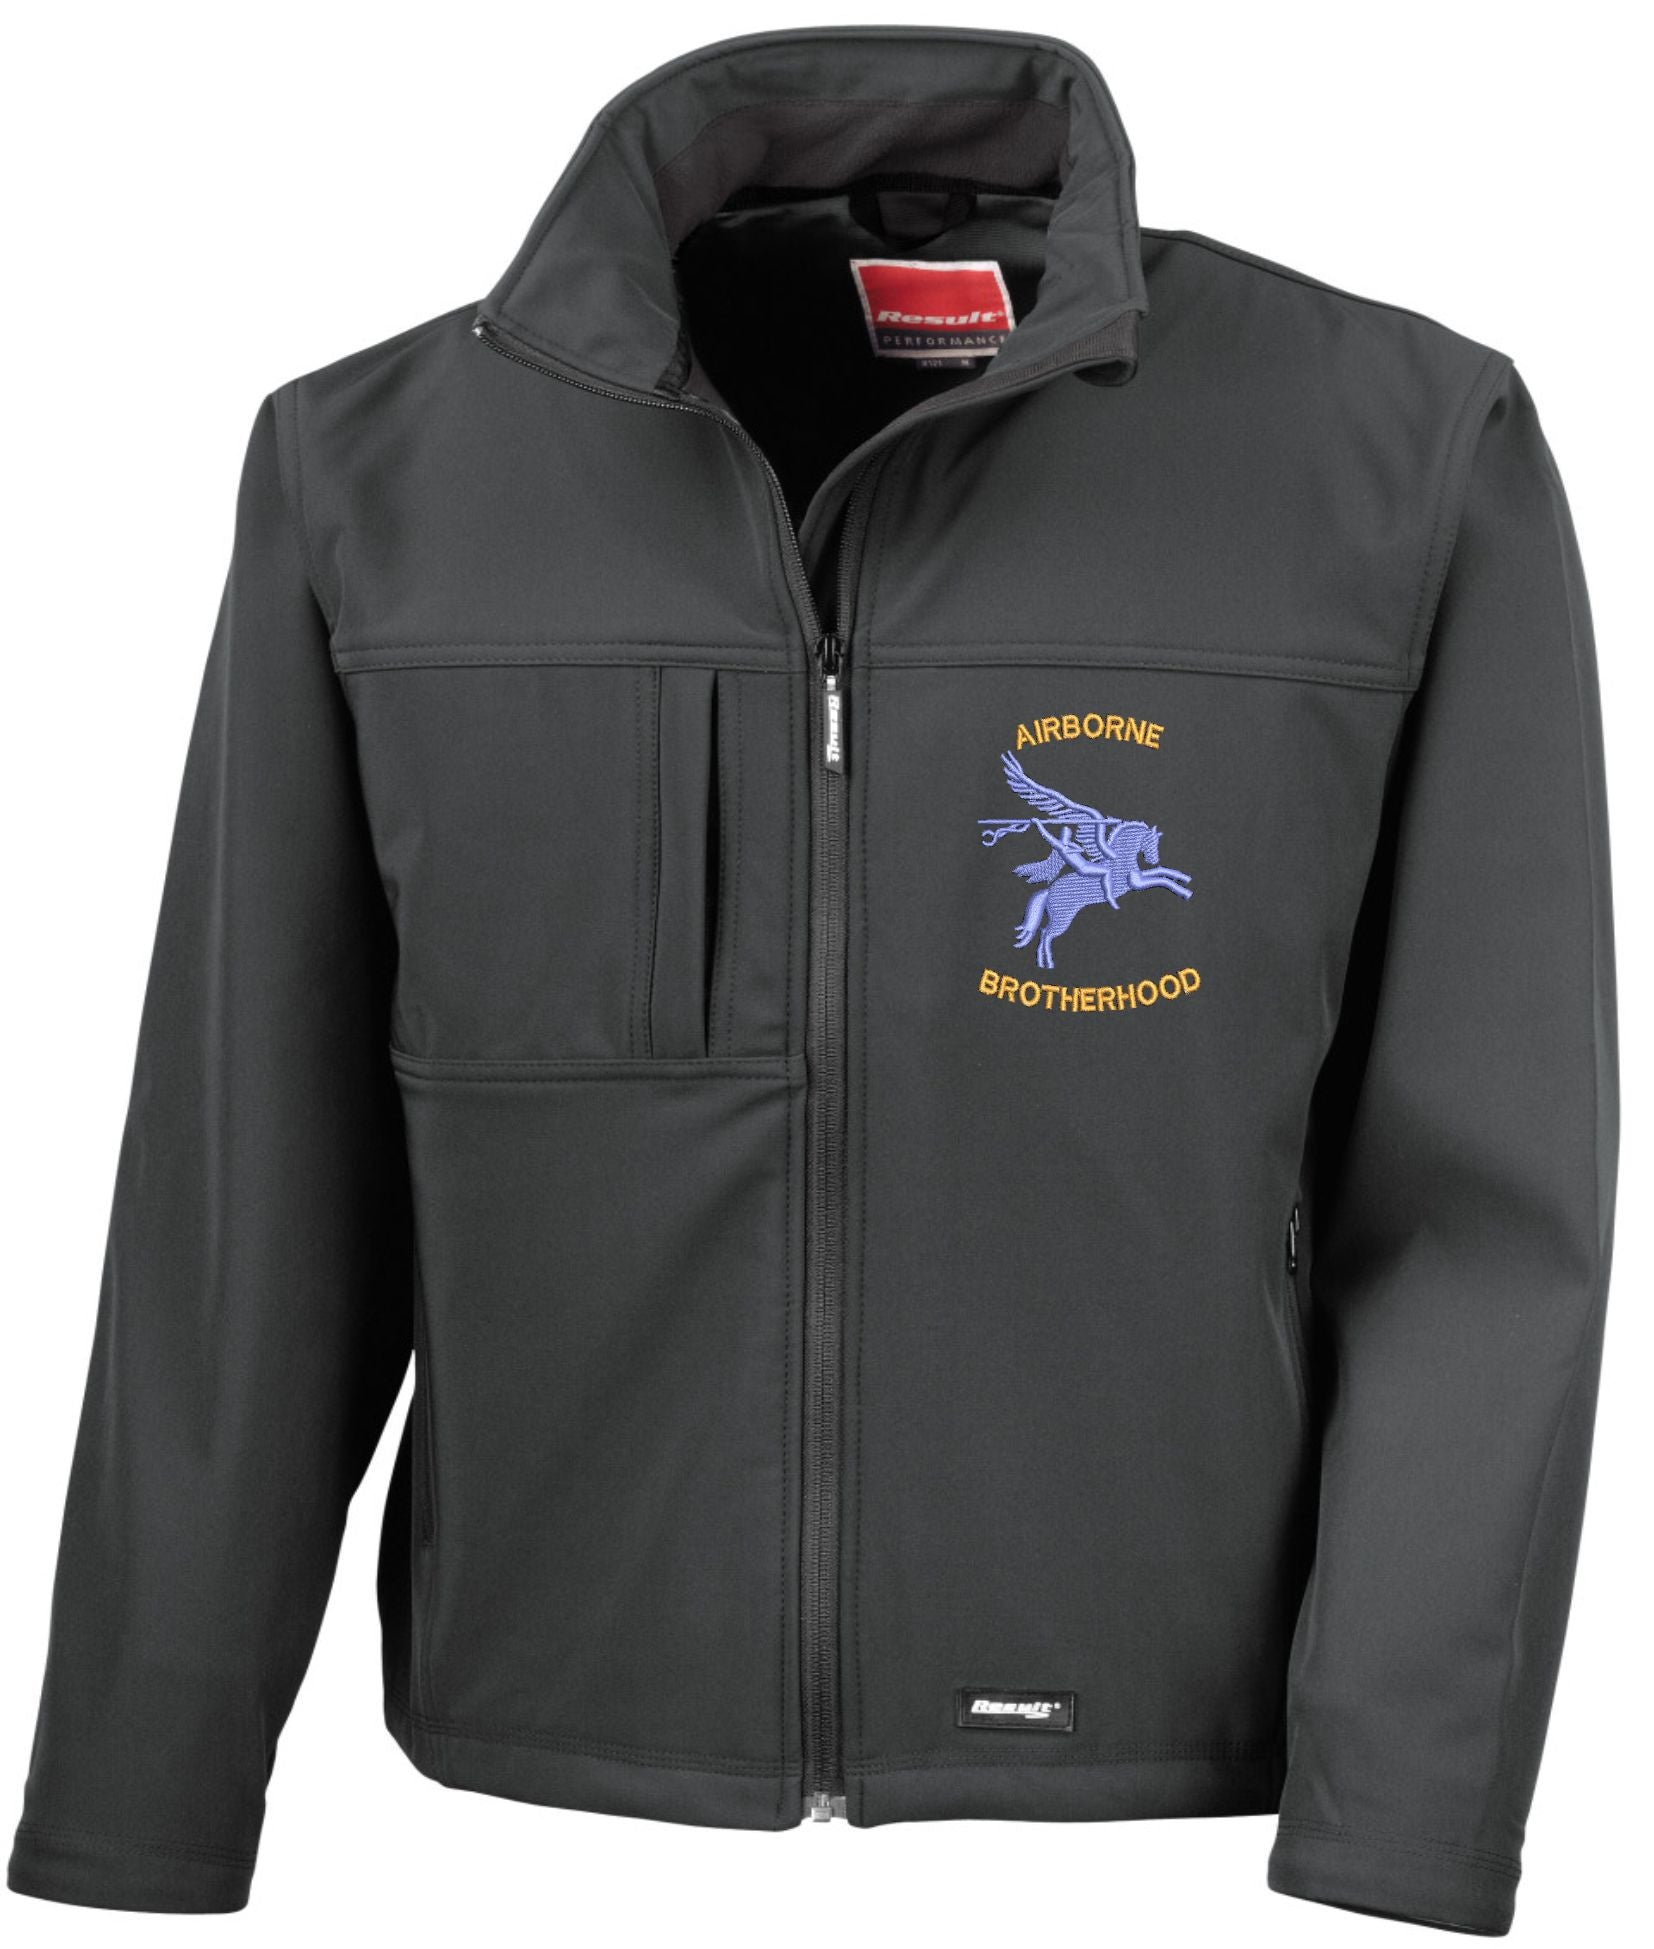 Airborne Brotherhood Softshell